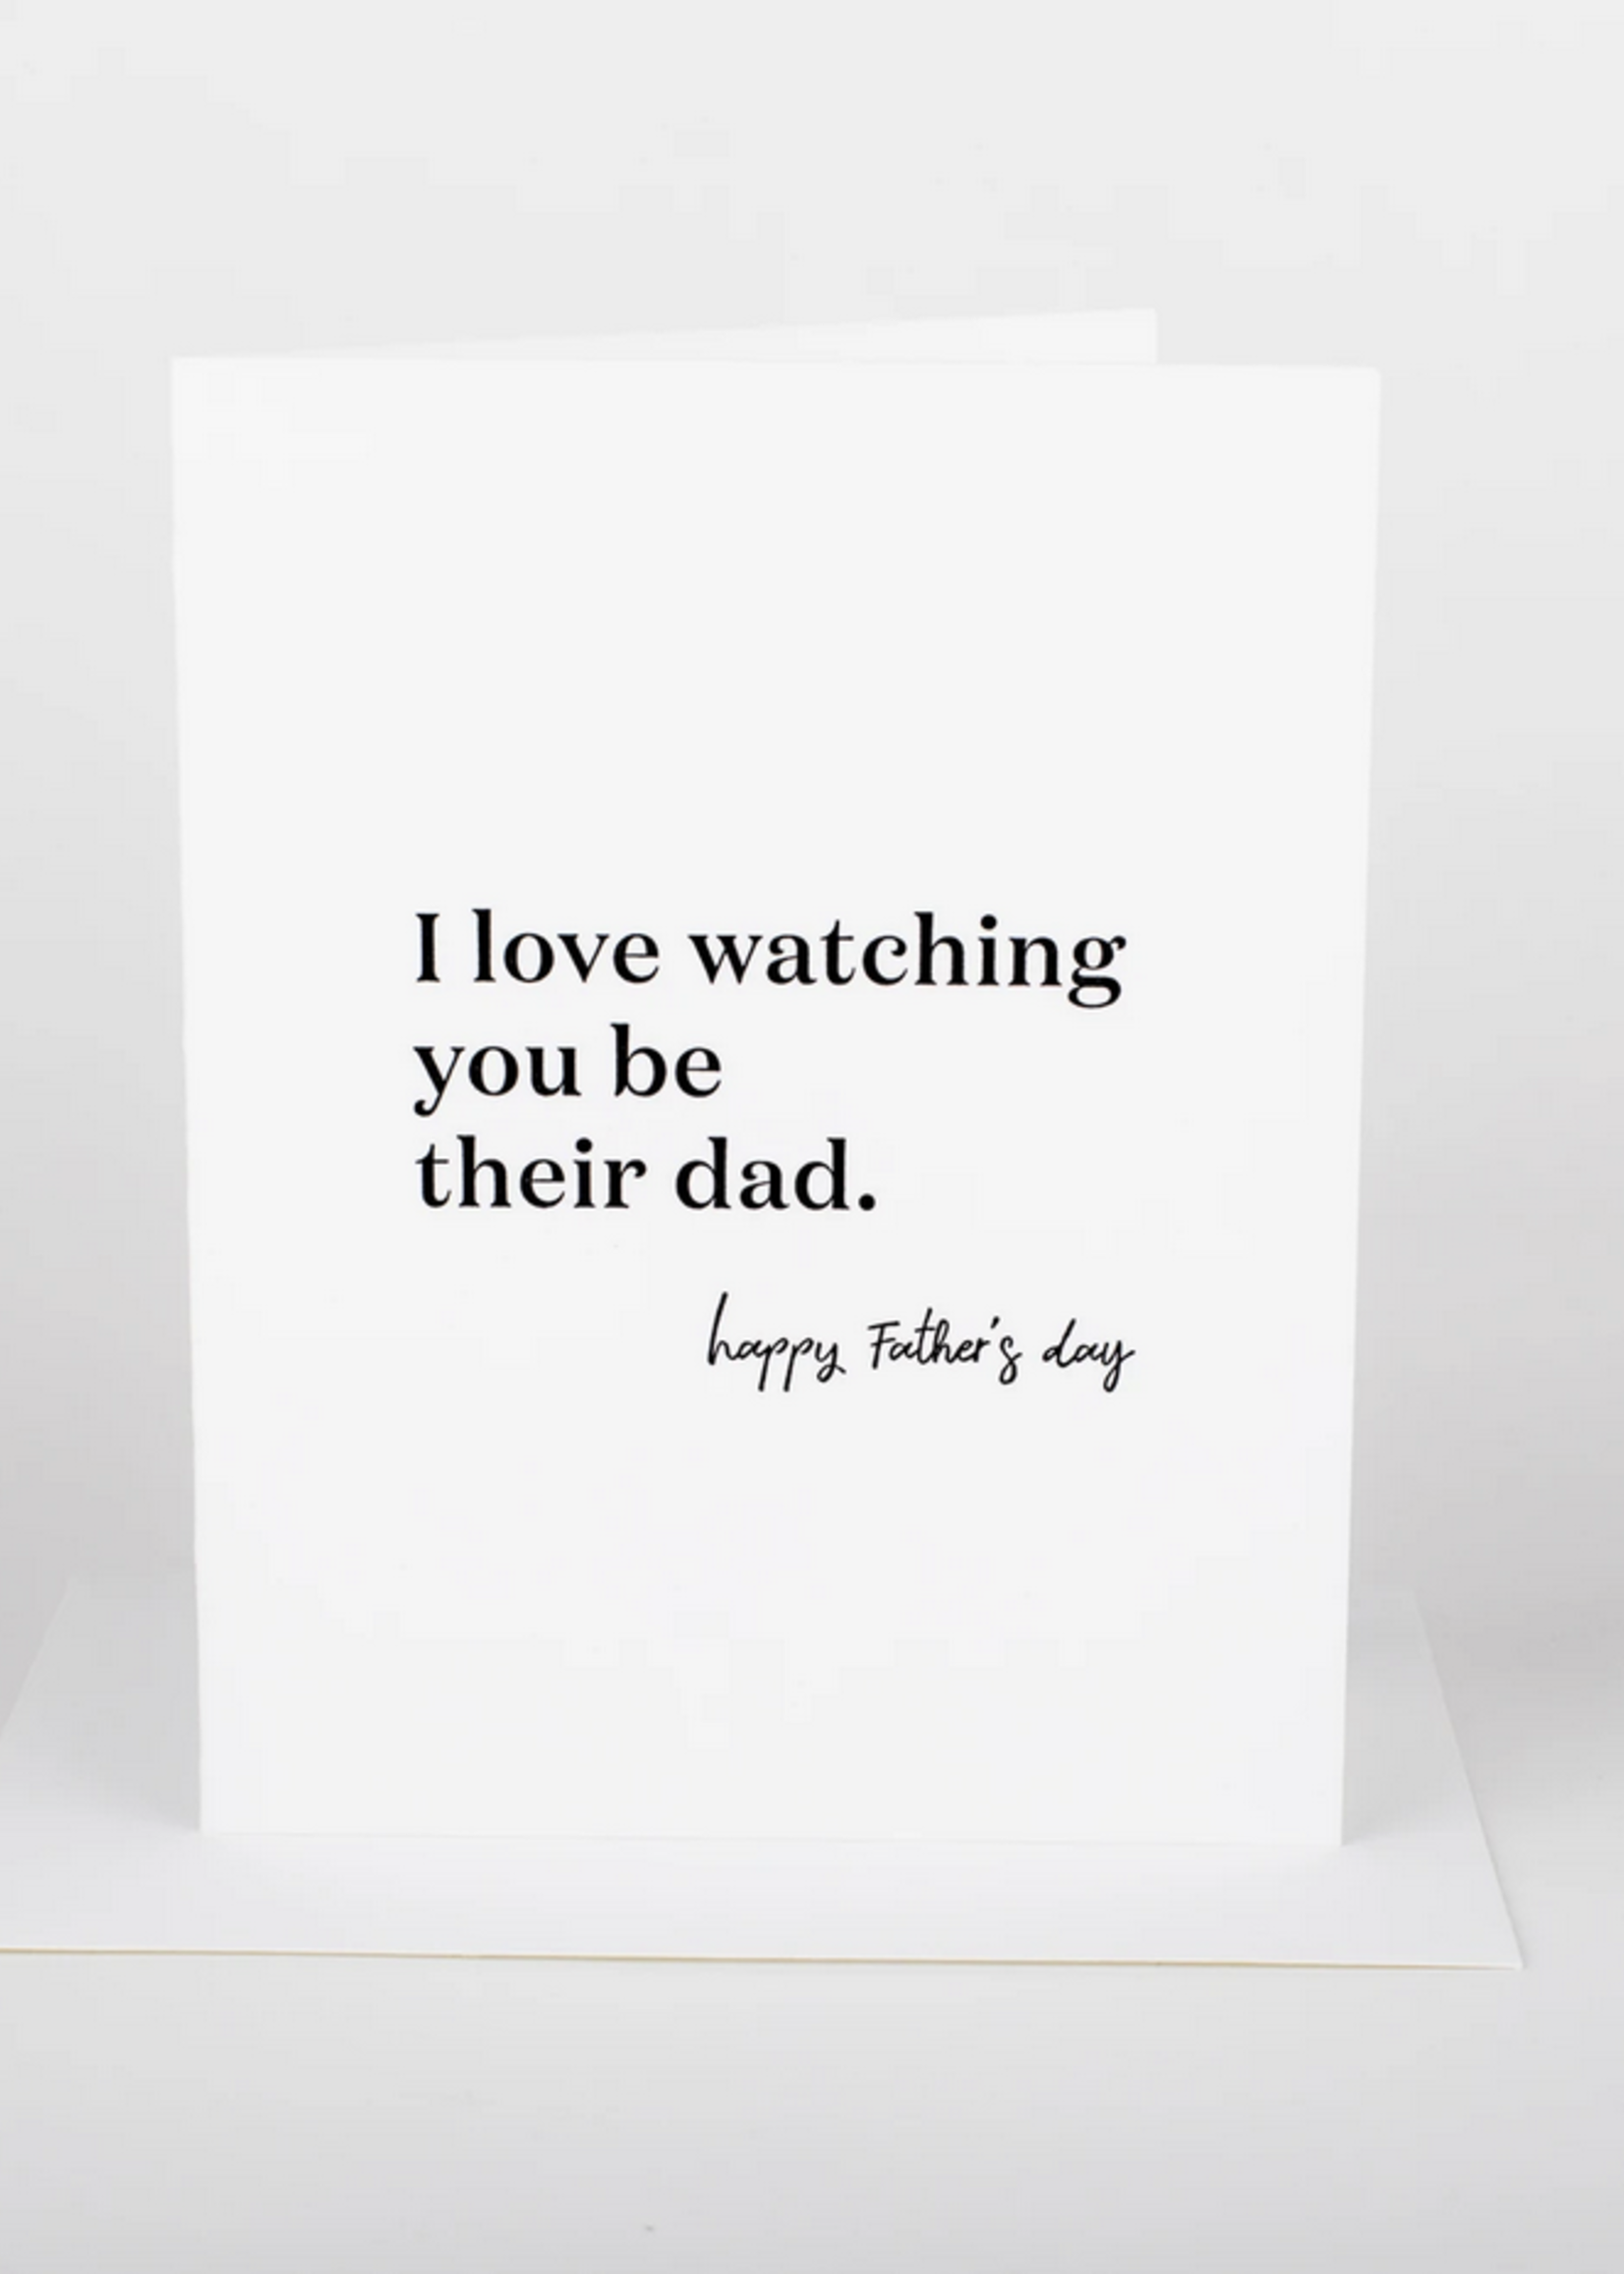 Wrinkle and Crease I love watching you be their dad Card